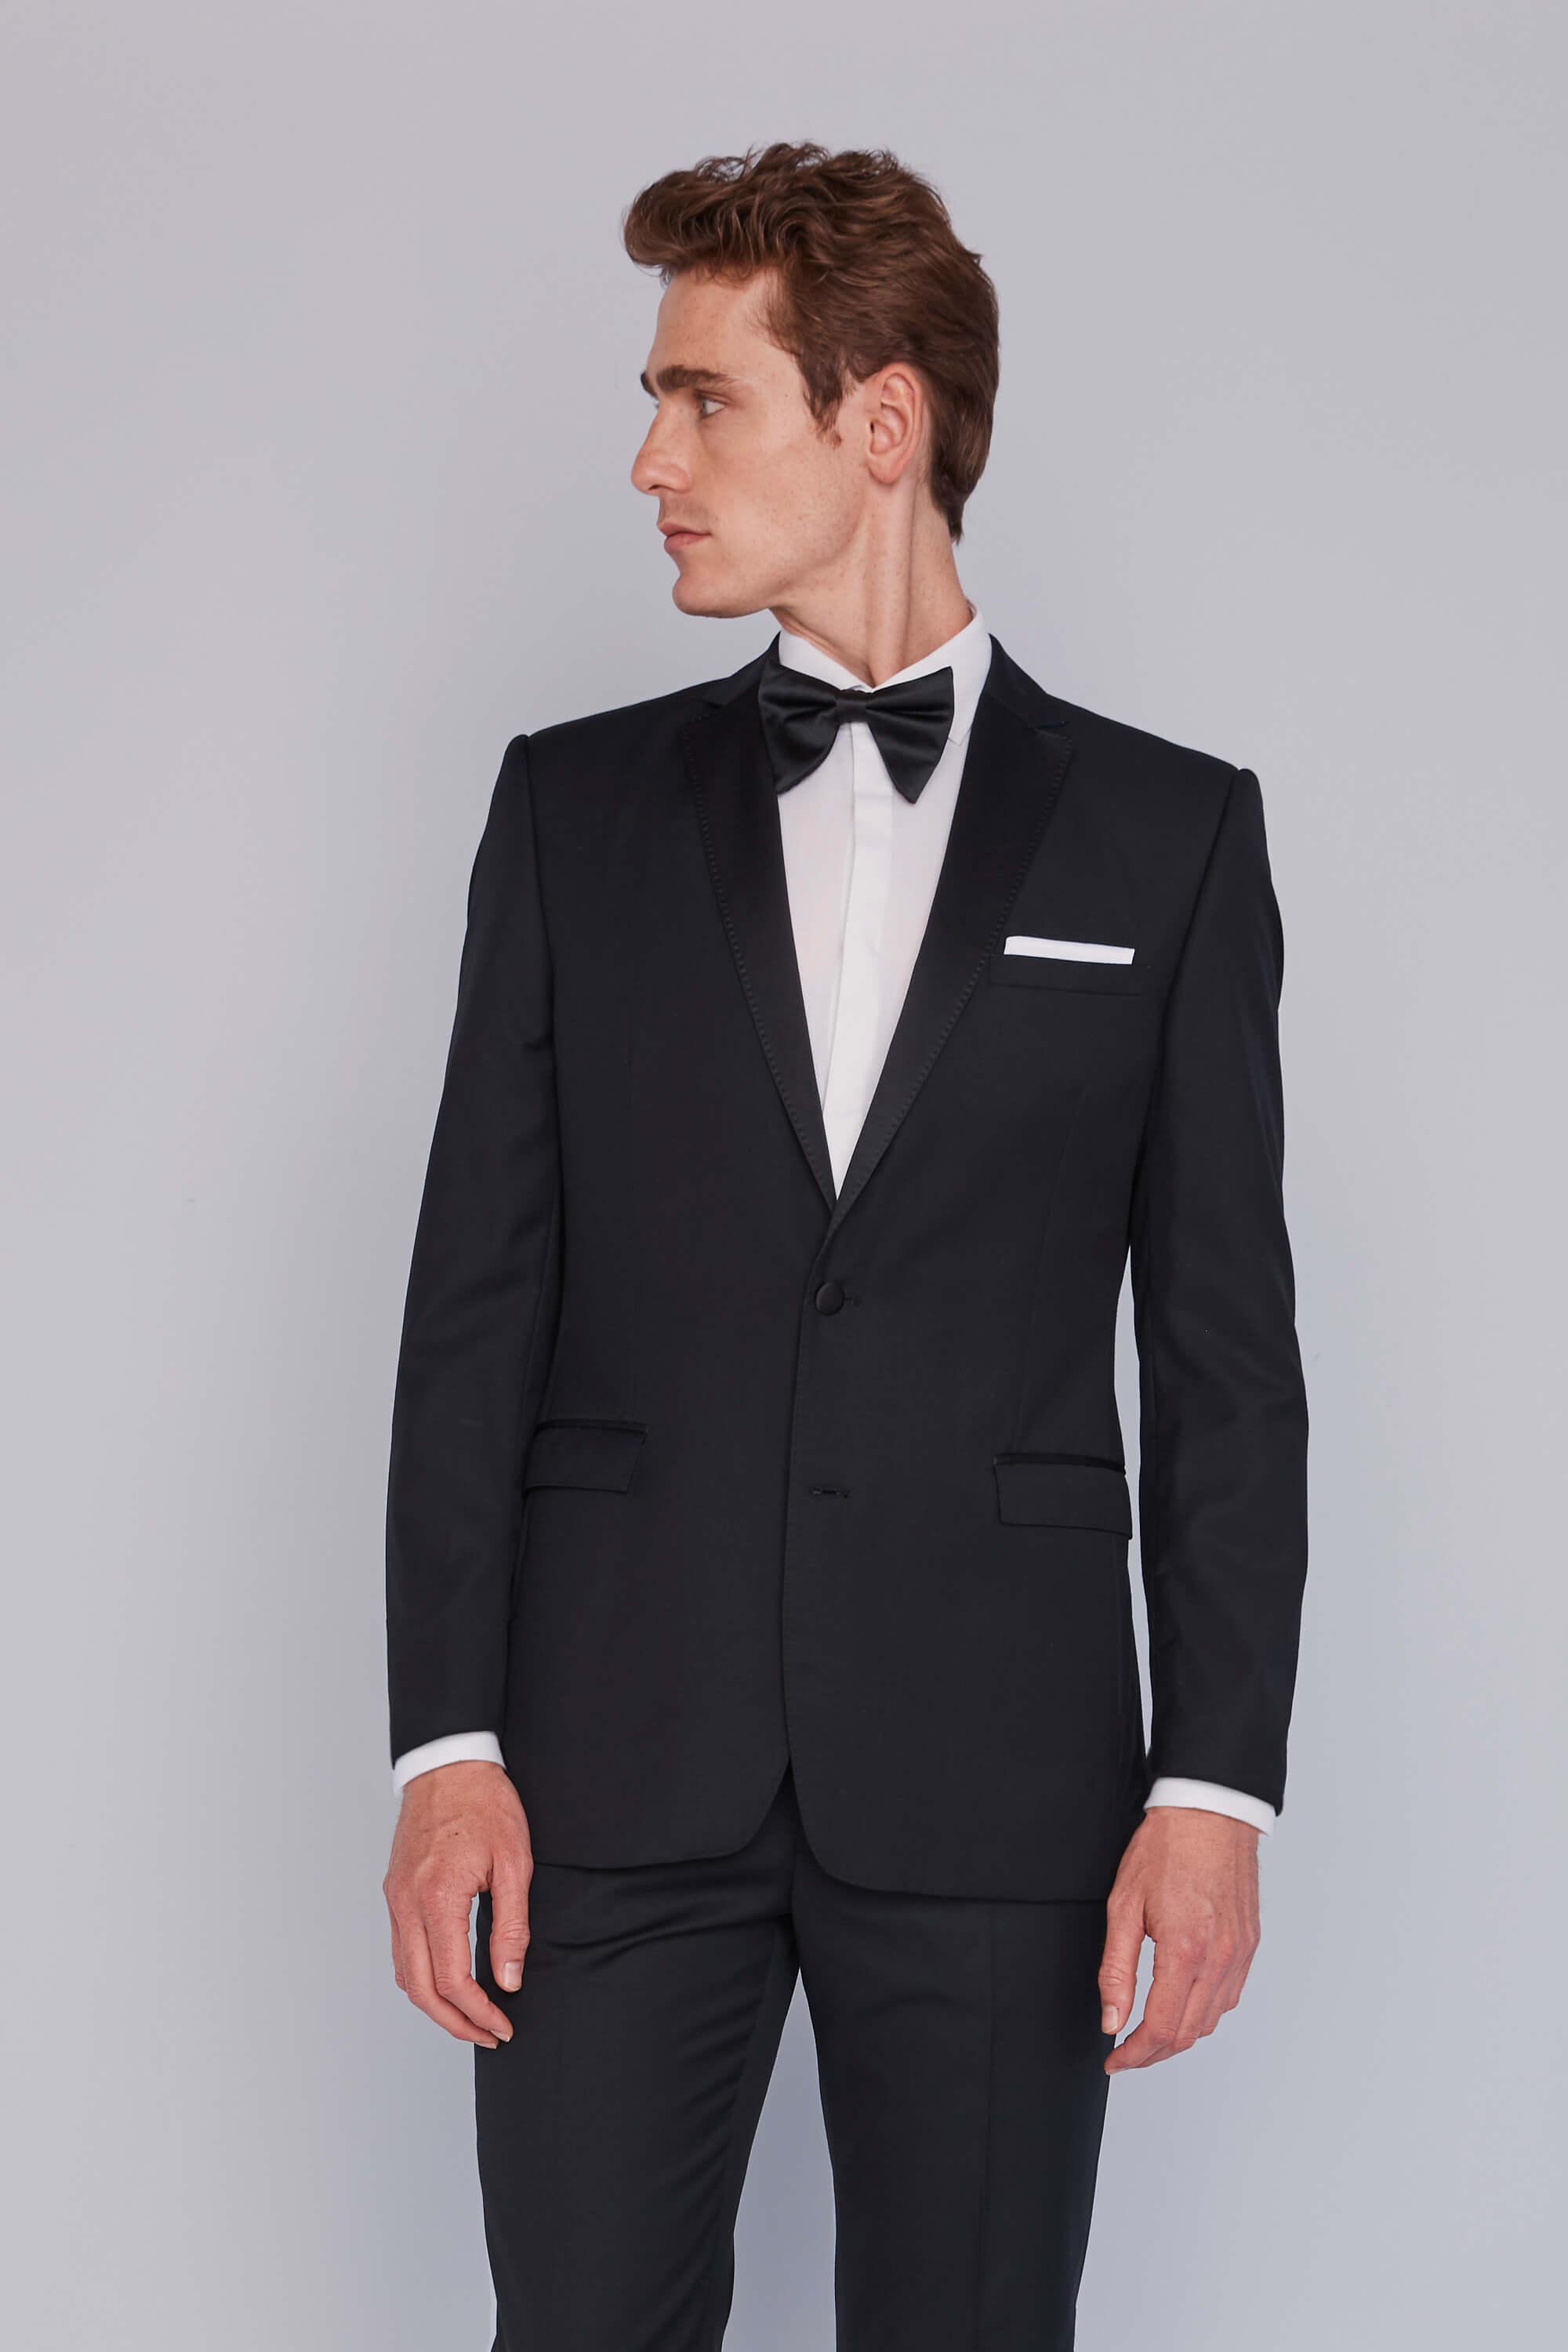 9384763b25 French Connection Black Tie Event Hire Suit | Moss Hire